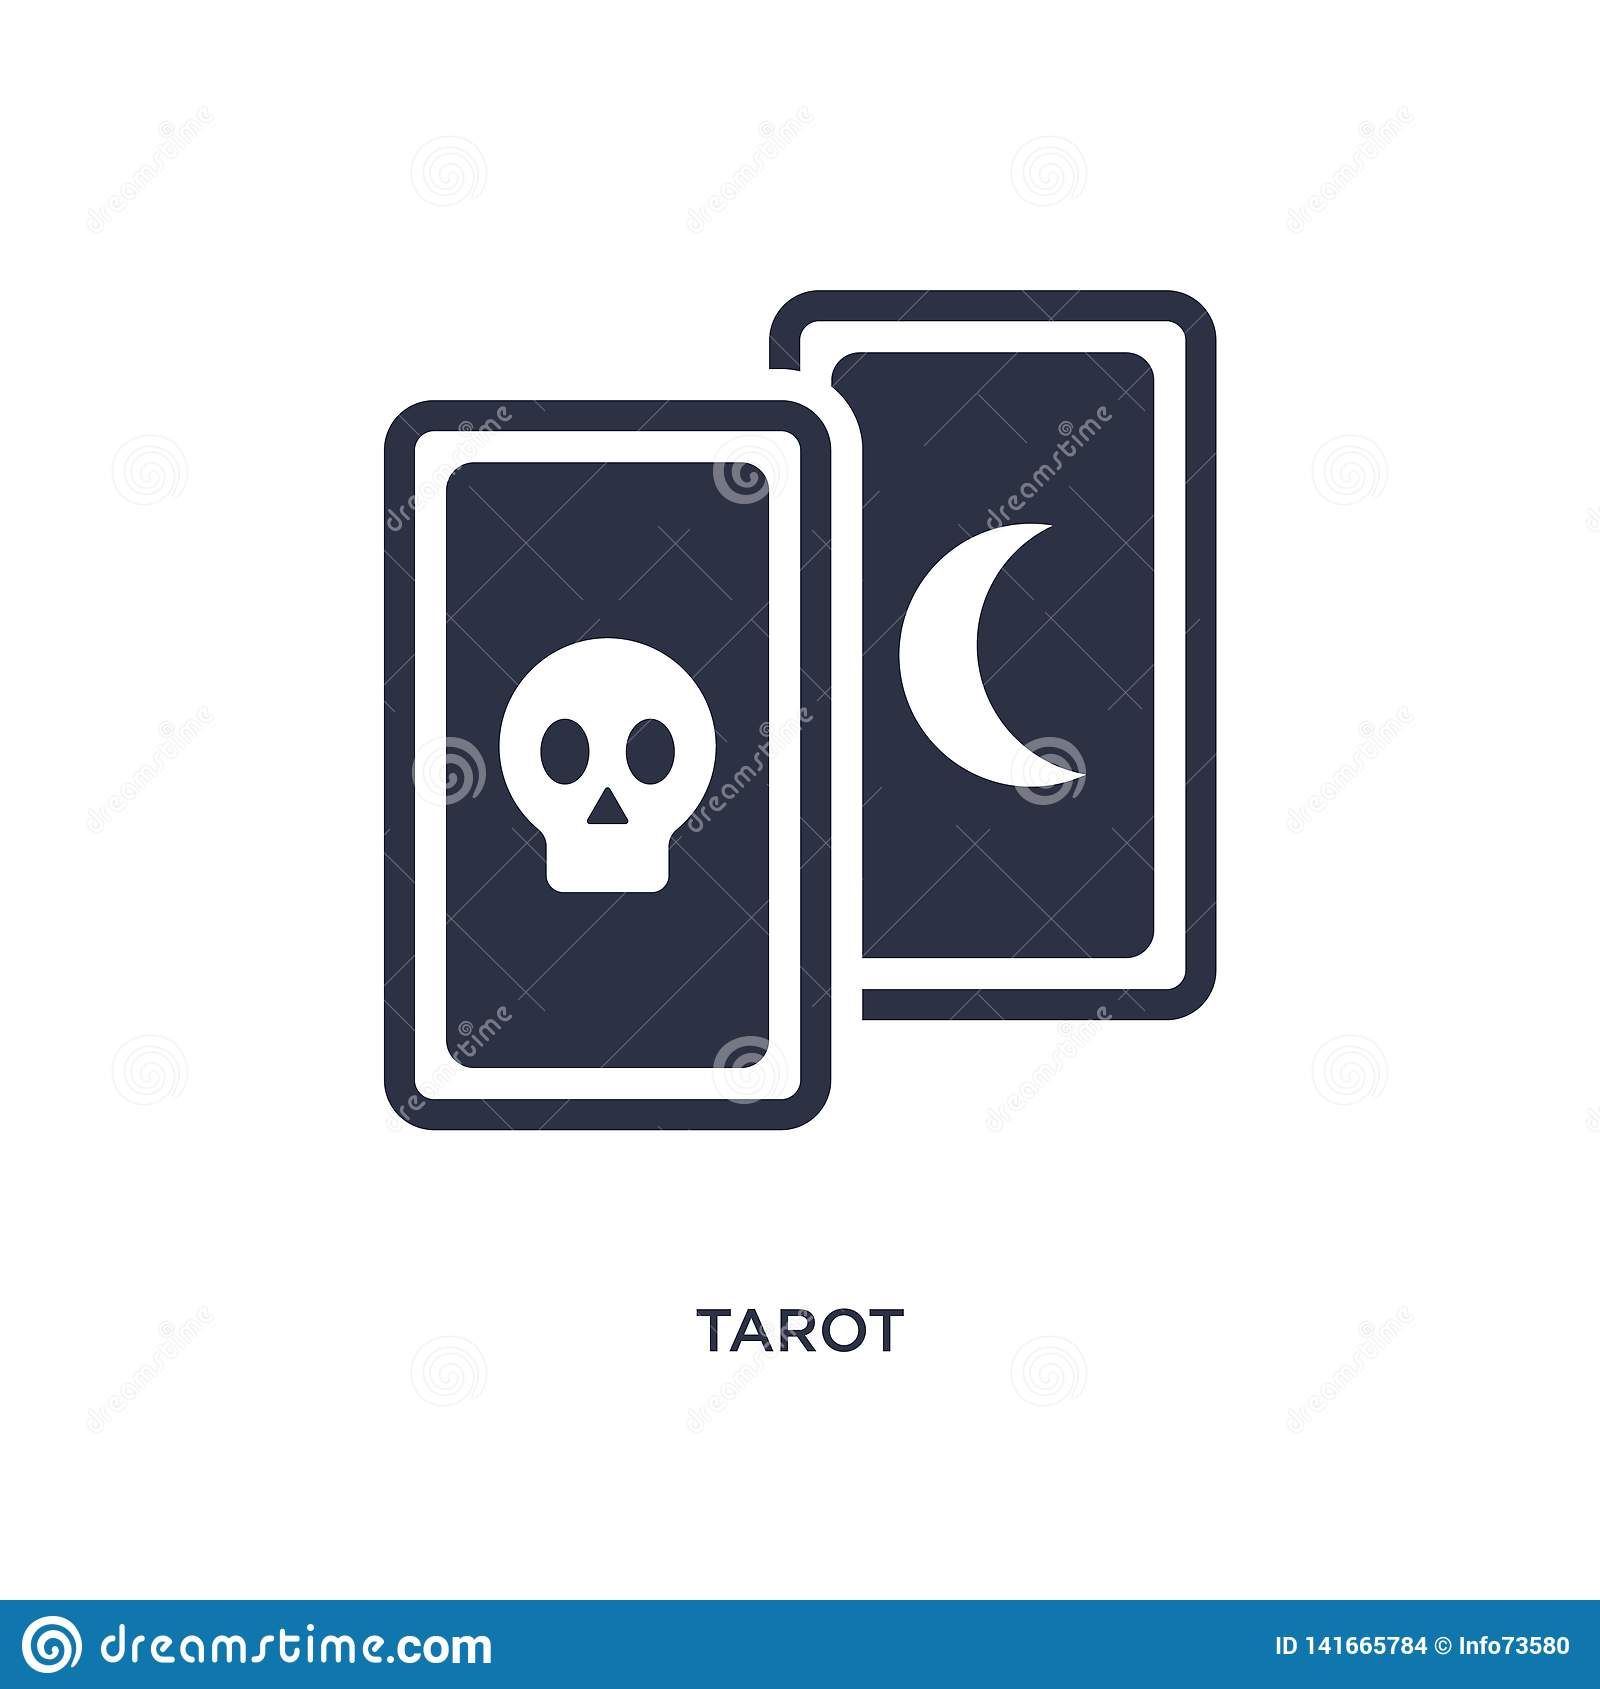 tarot icon on white background. Simple element illustration from magic concept